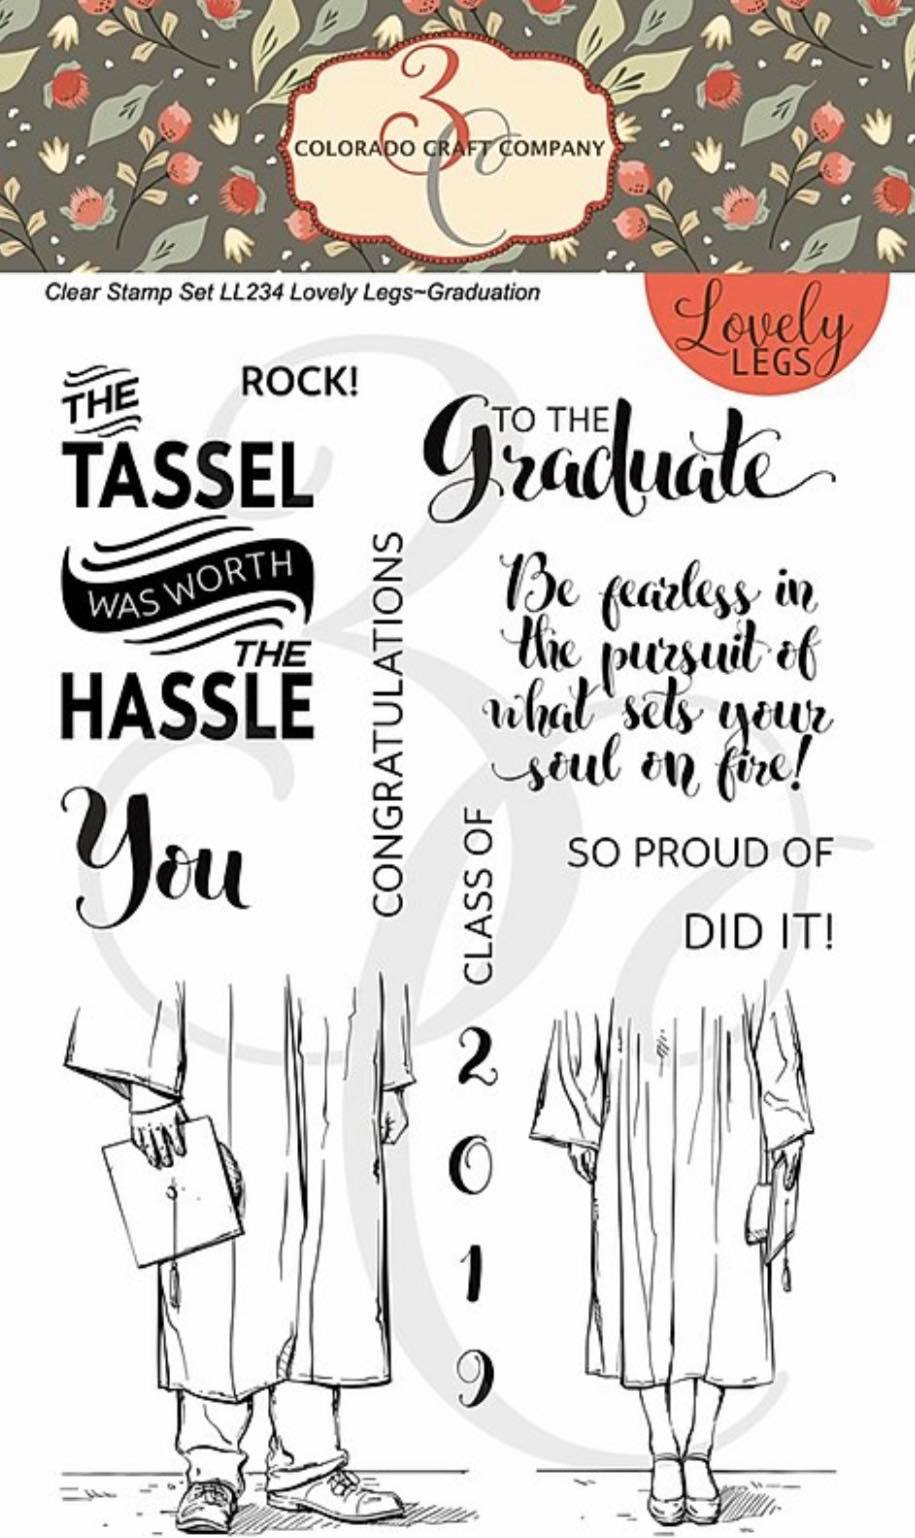 Colorado Craft Co. - Lovely Legs Graduation Stamp Set